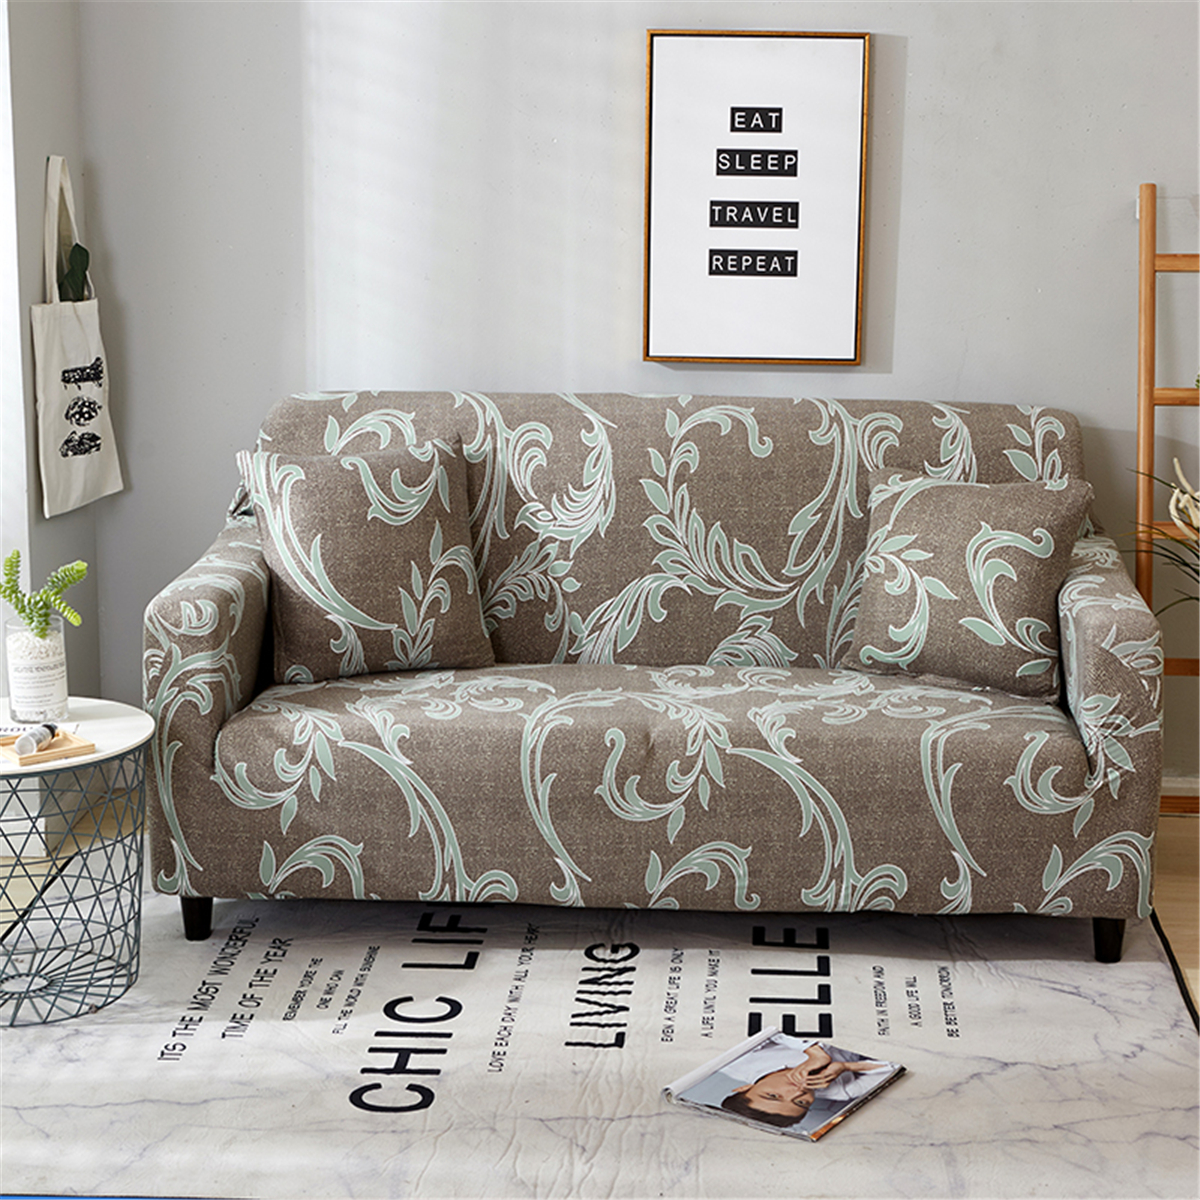 Retro 1//2//3//4 Seater Slipcover Stretch Sofa Covers Couch Elastic Soft Protector